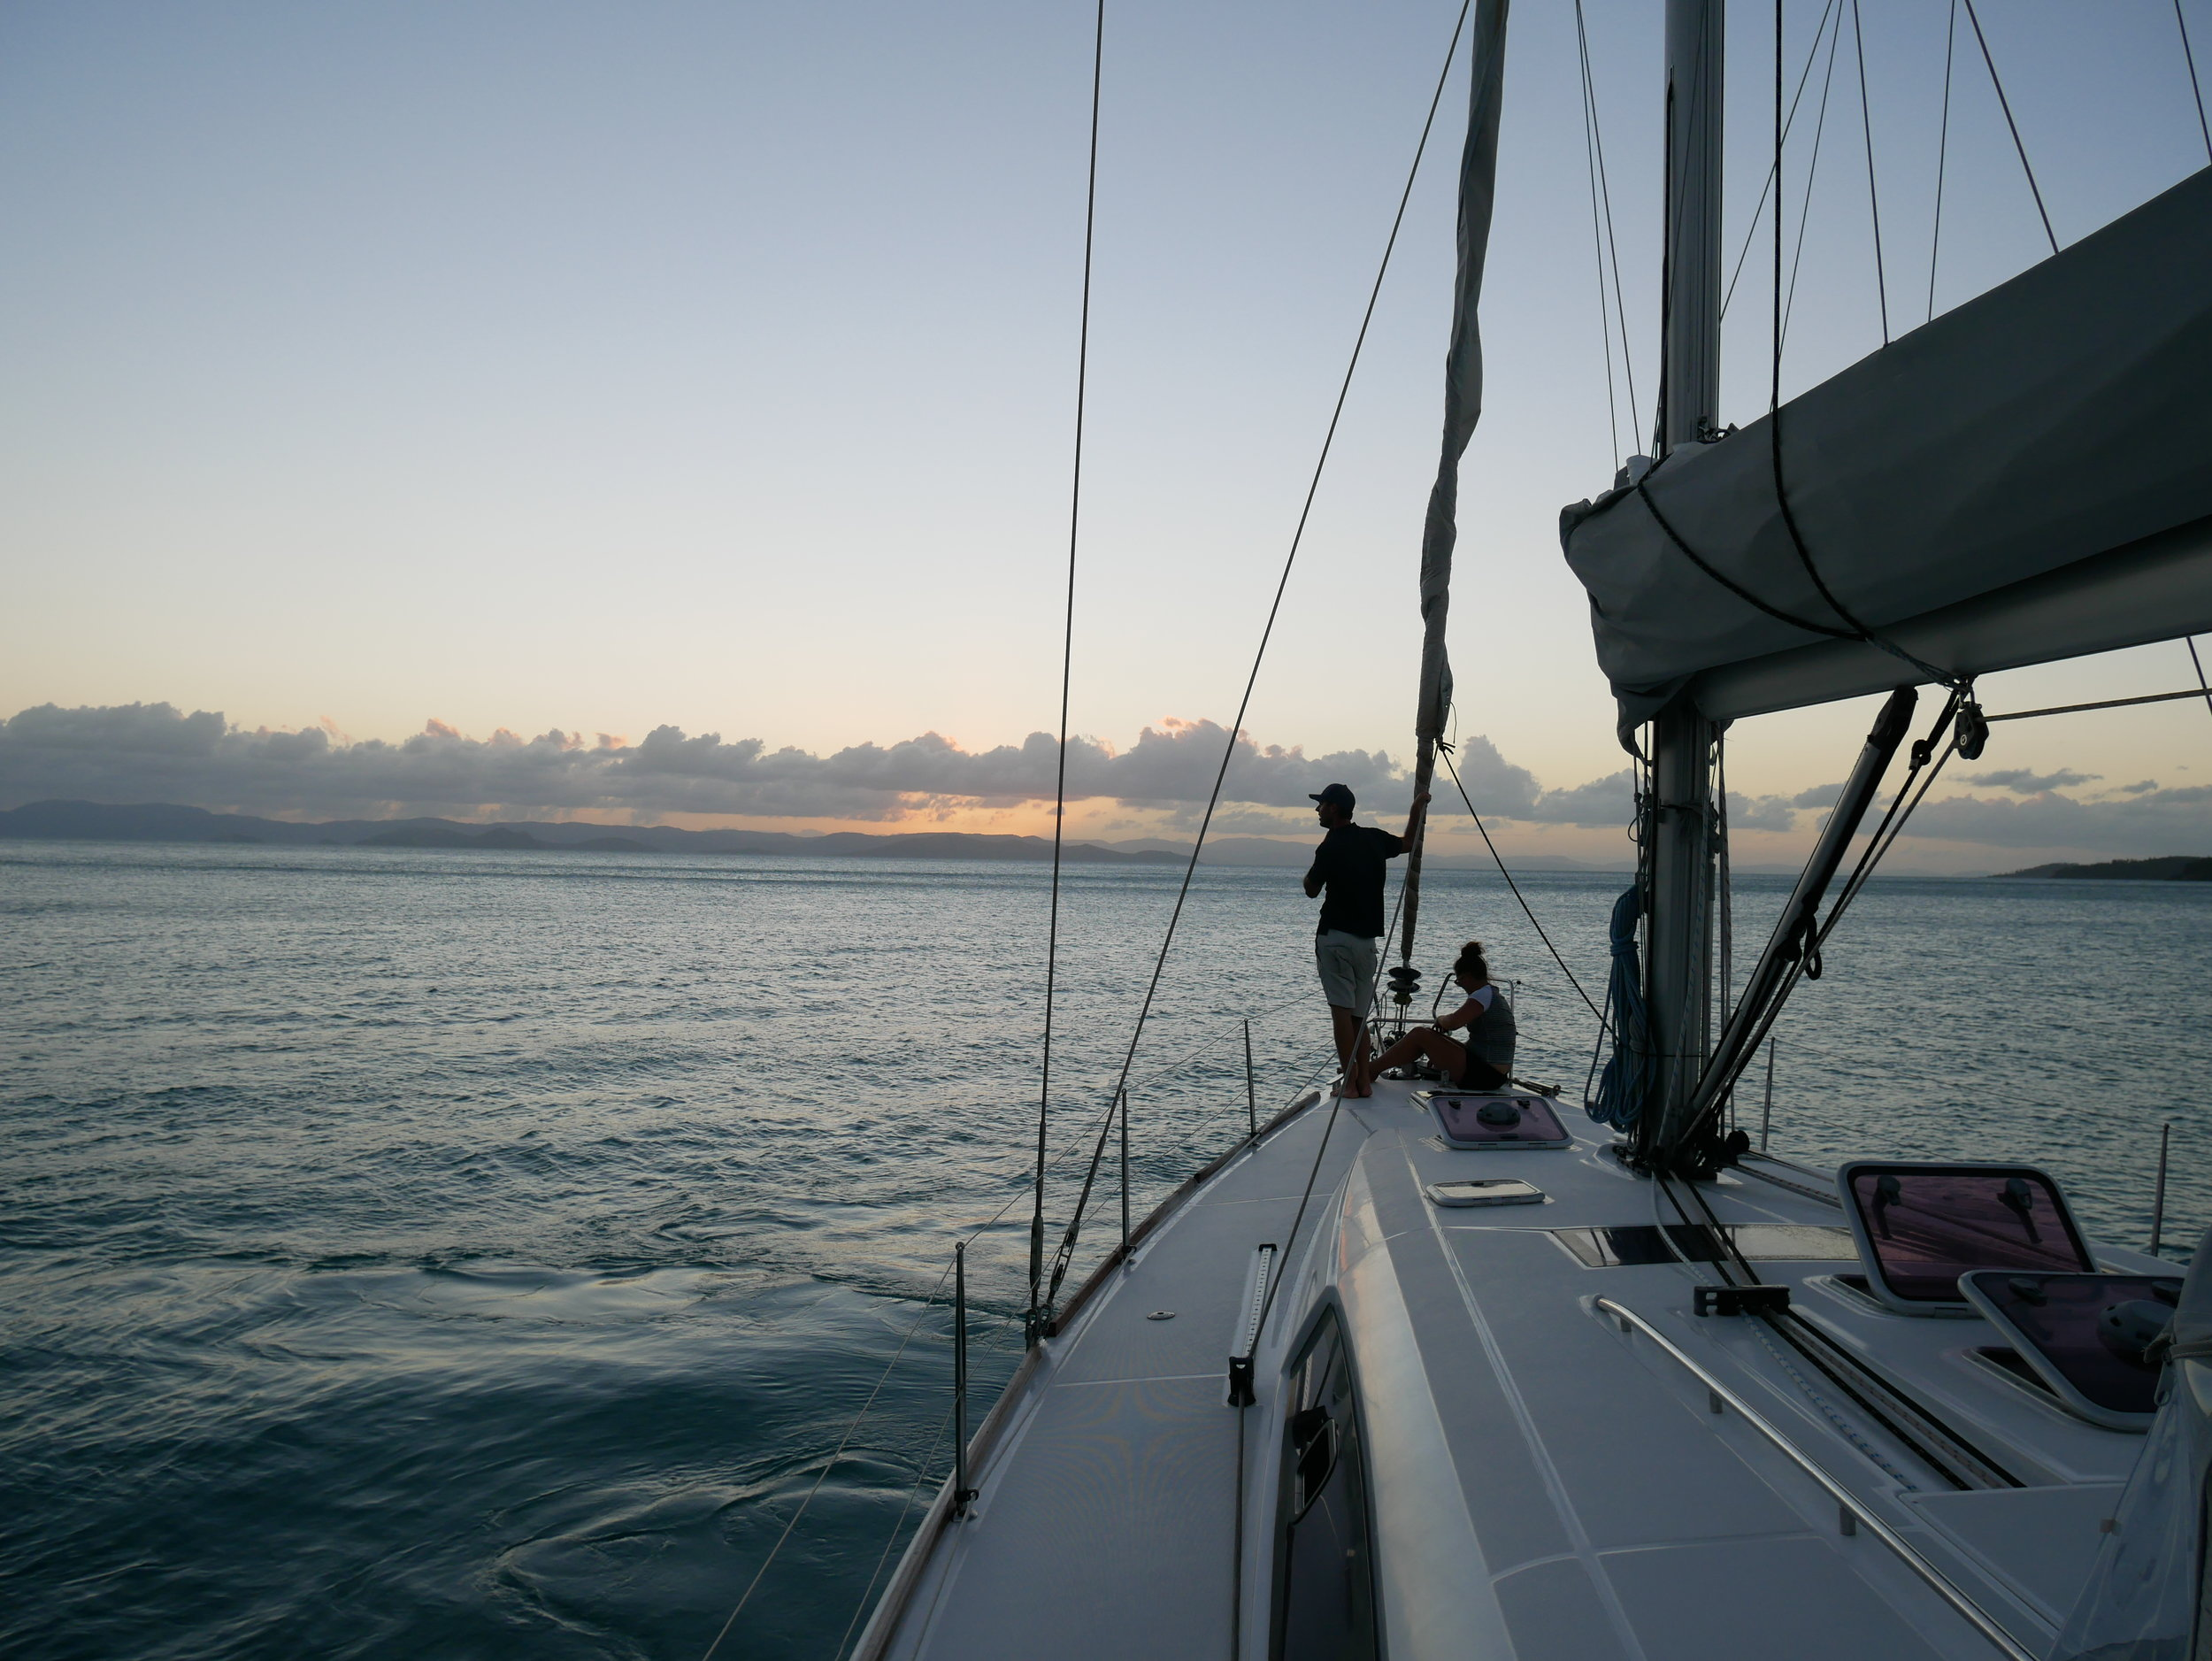 Skipper Danny and first mate Heidi took great care of us over our time in the Coral Sea (Jan 29).